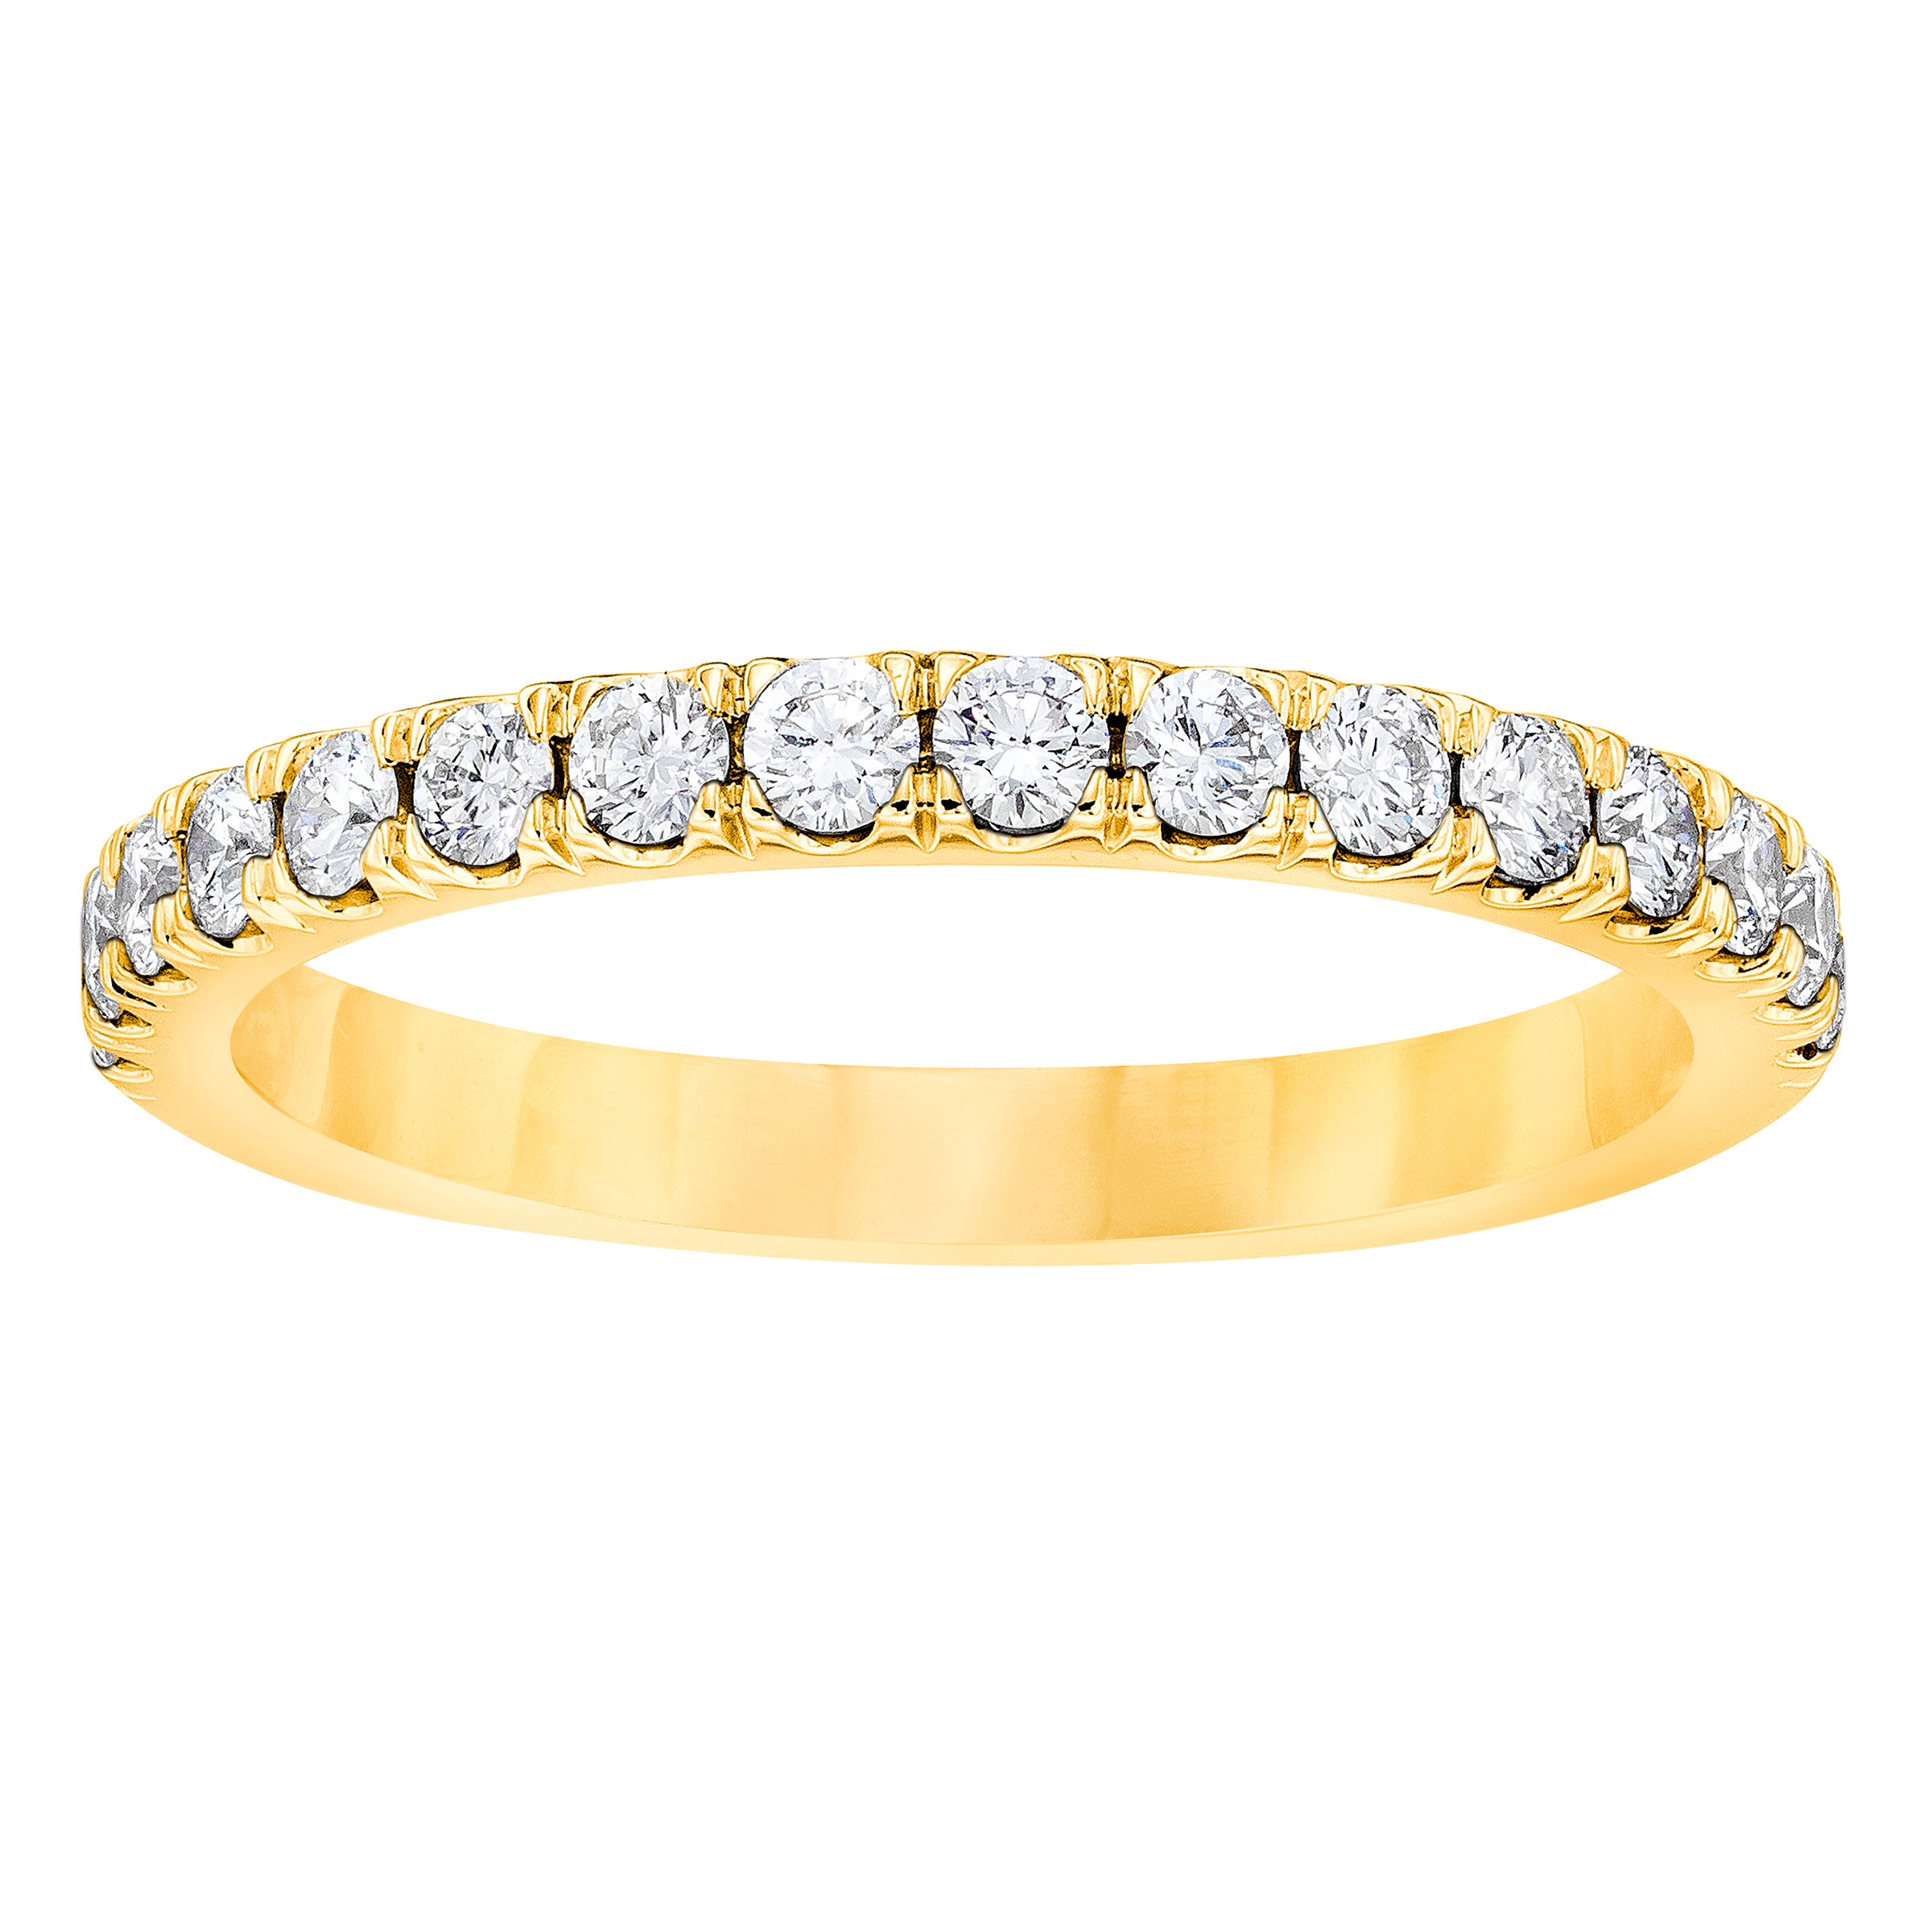 Four-Prong-Eternity-Ring-in-Yellow-Gold